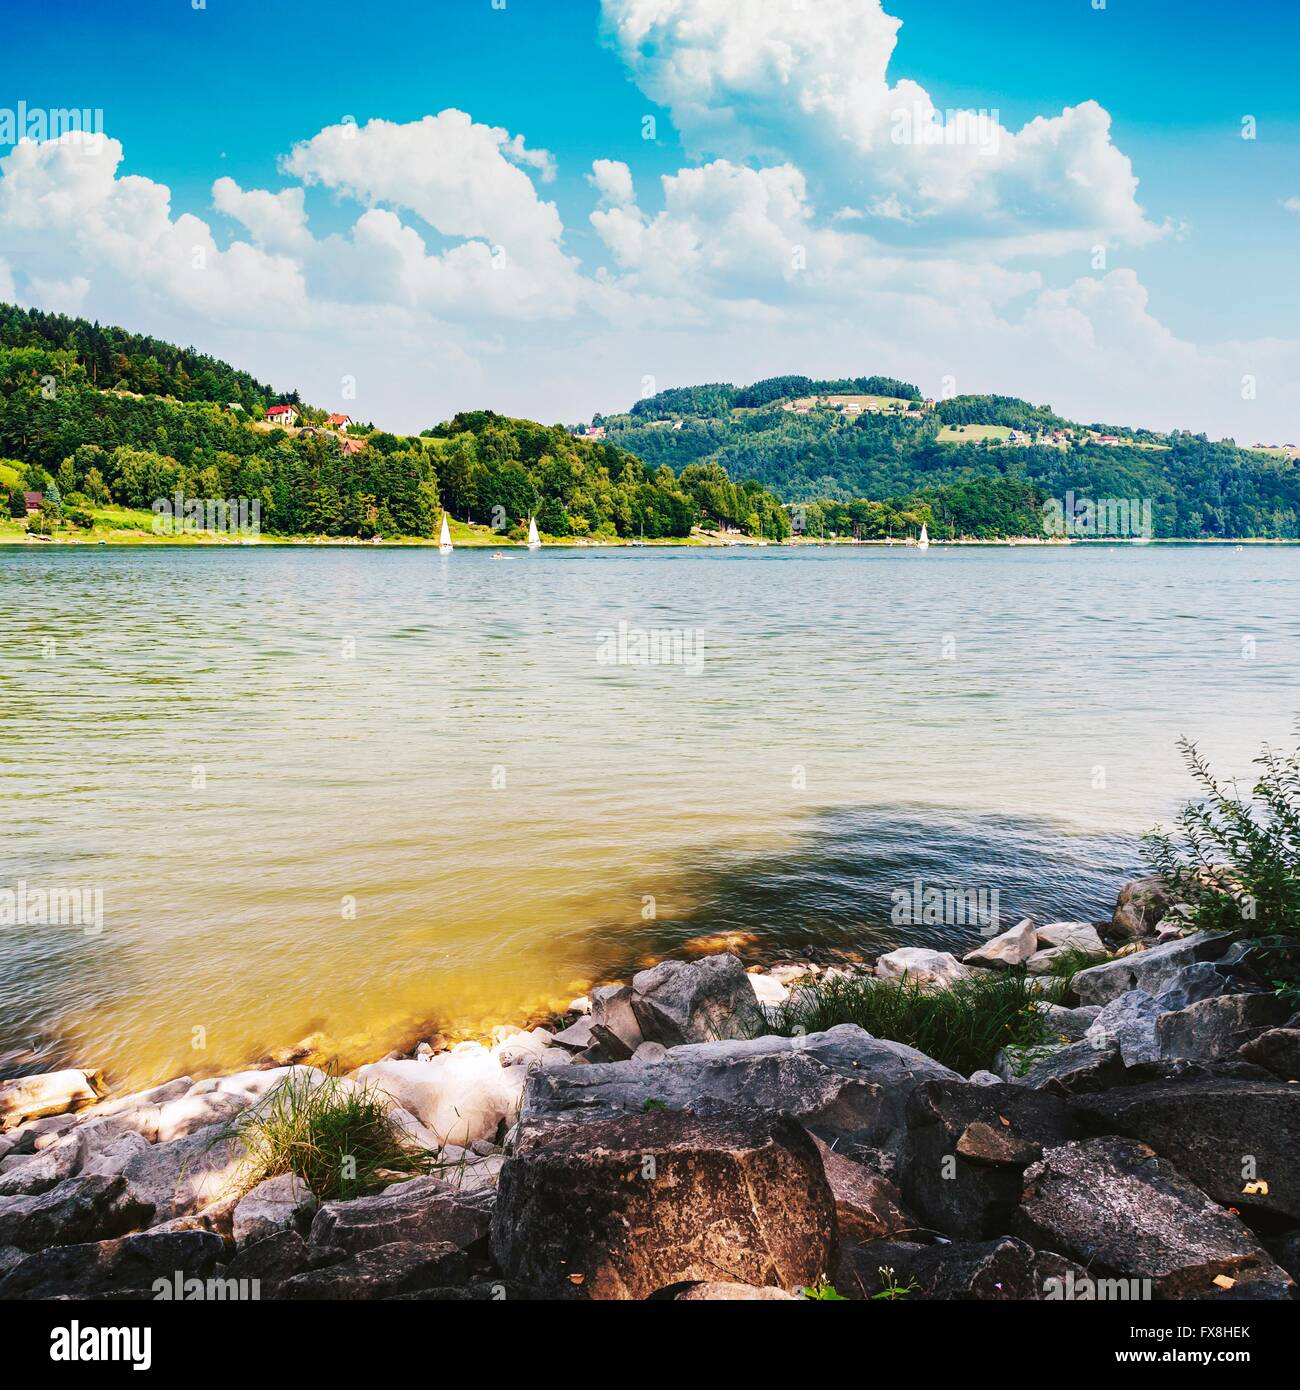 Summer day over the lake - Stock Image